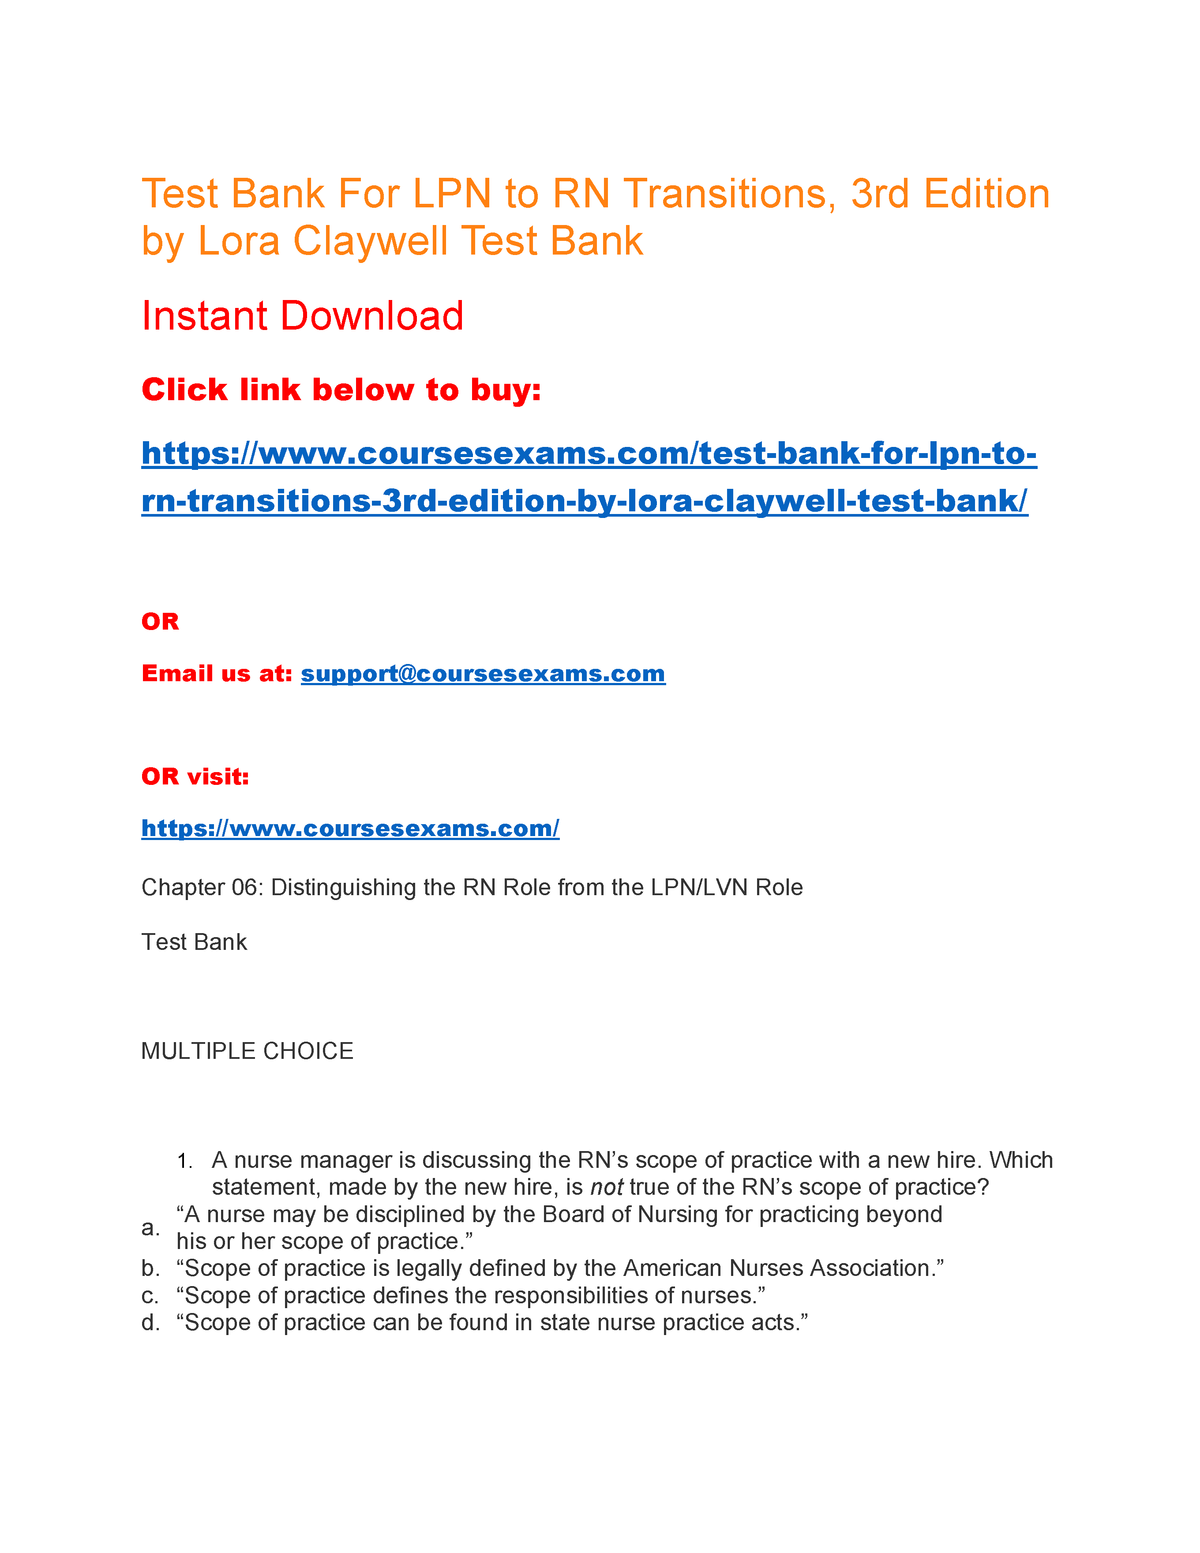 Test Bank For LPN To RN Transitions 3rd Edition By Lora Claywell